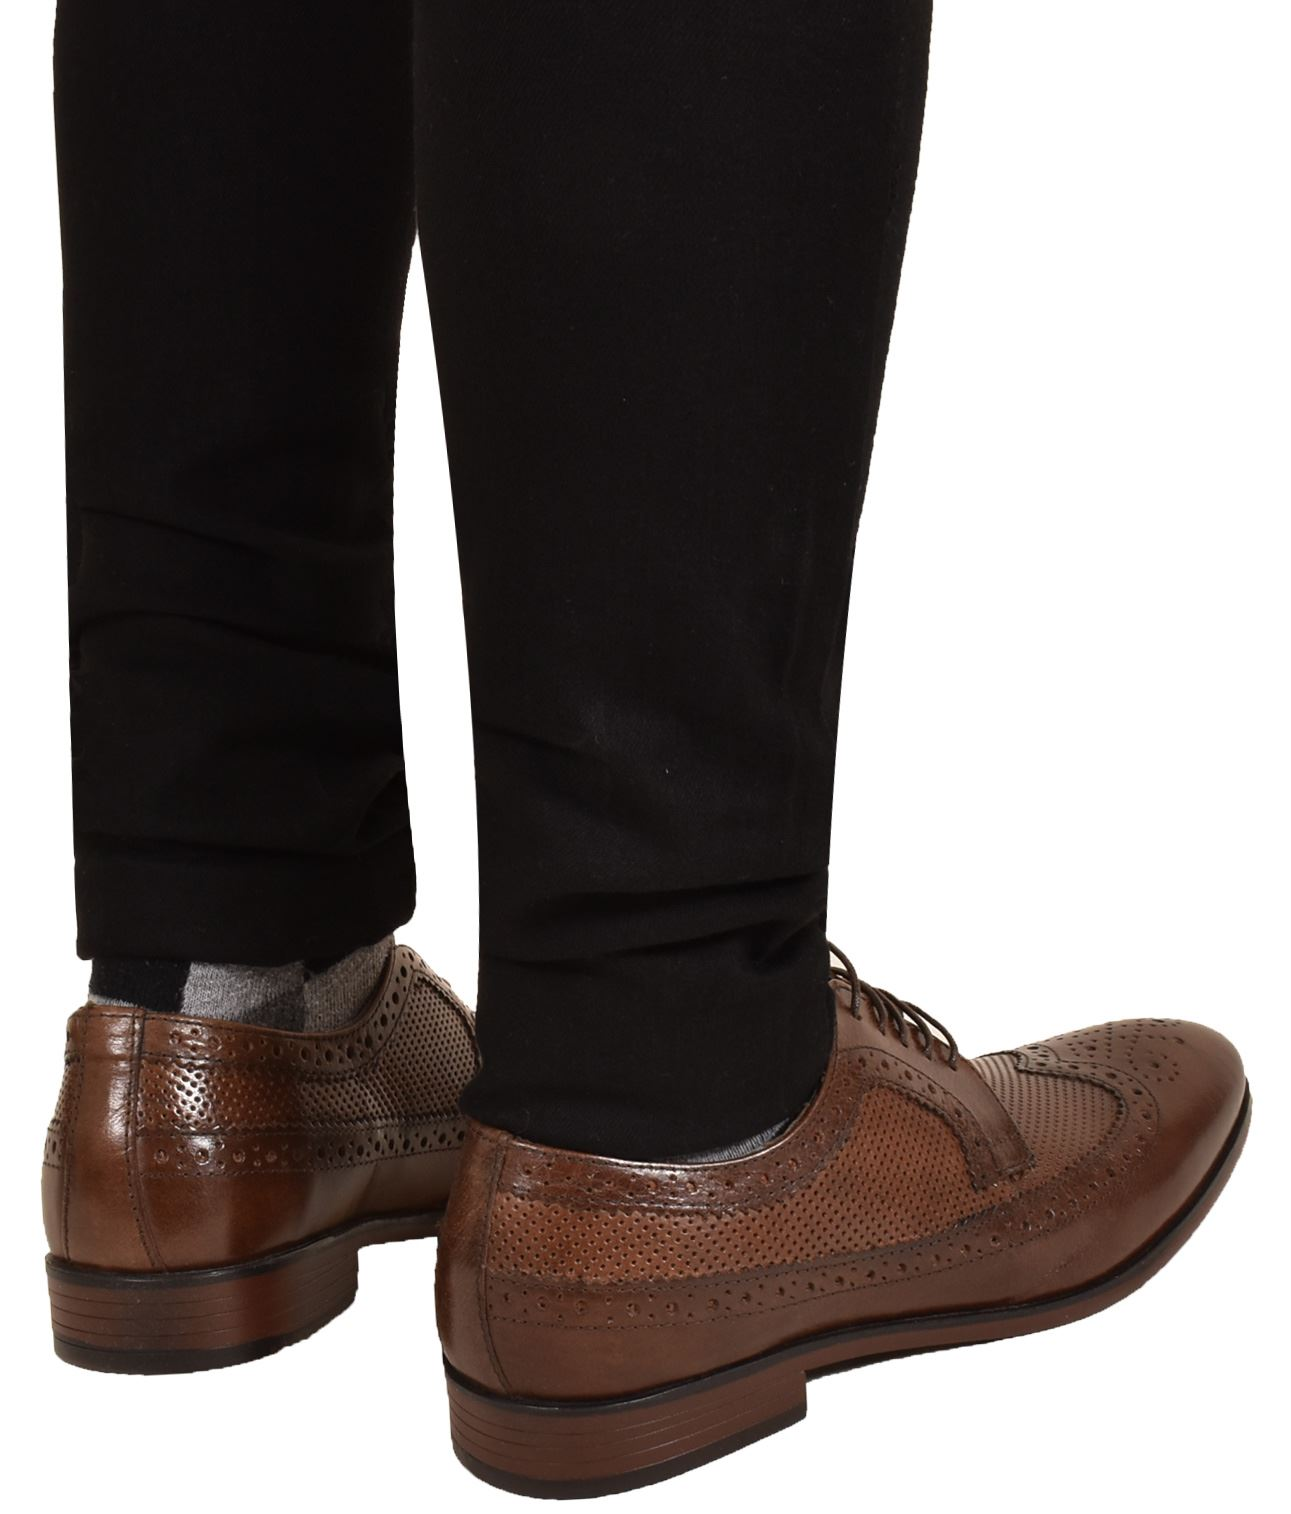 Mens-UK-Style-Leather-Lining-Formal-Office-Wedding-Smart-Work-Brogue-Shoes thumbnail 111